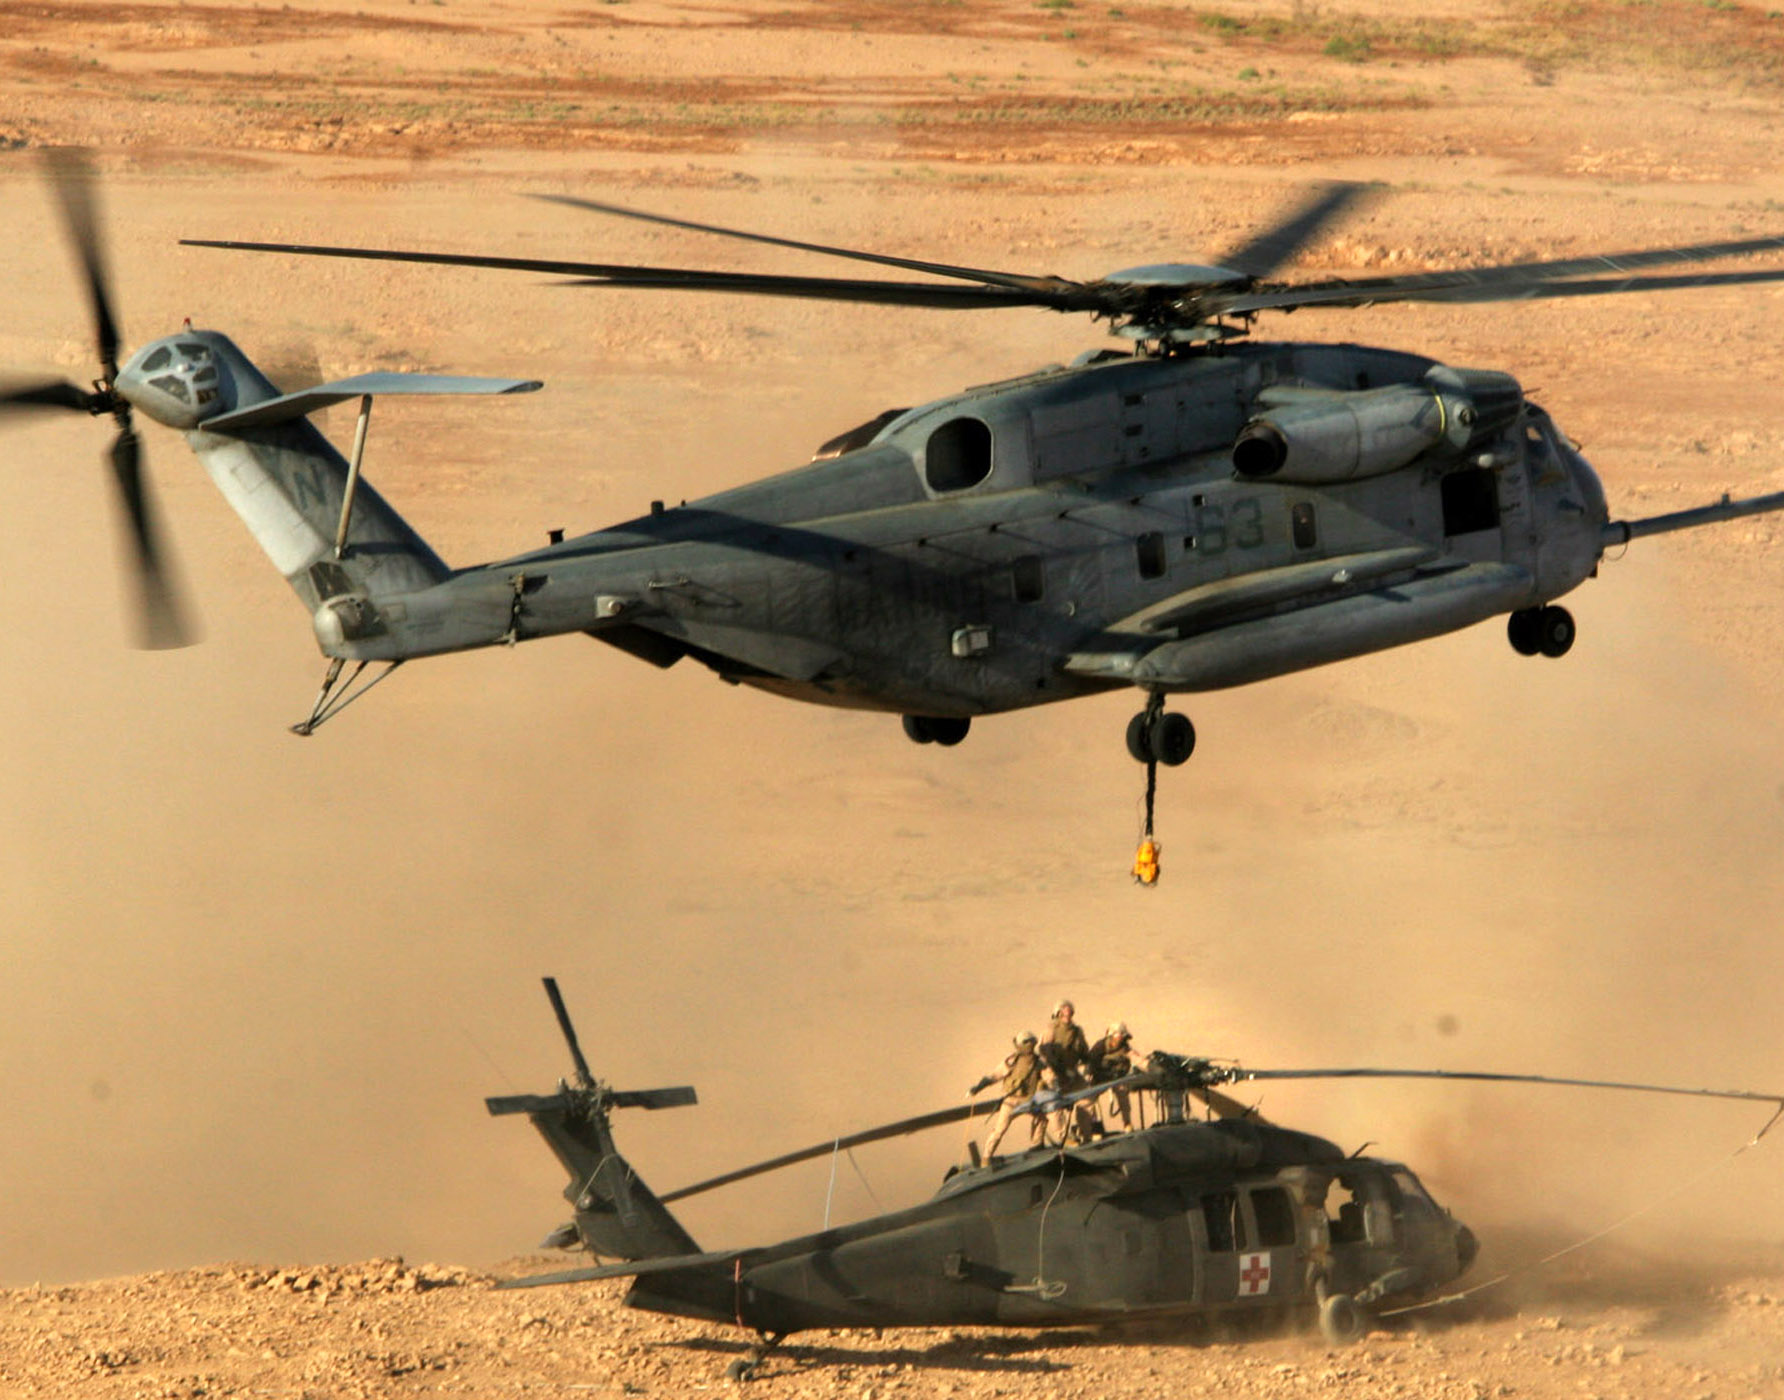 helicopter cpl with File Uh 60 And Ch 53e on File UH 60 and CH 53E together with Joe Taylor further Watch furthermore Army medical enlisted corps celebrates 126 years of faithful service together with Lurps Gallery.